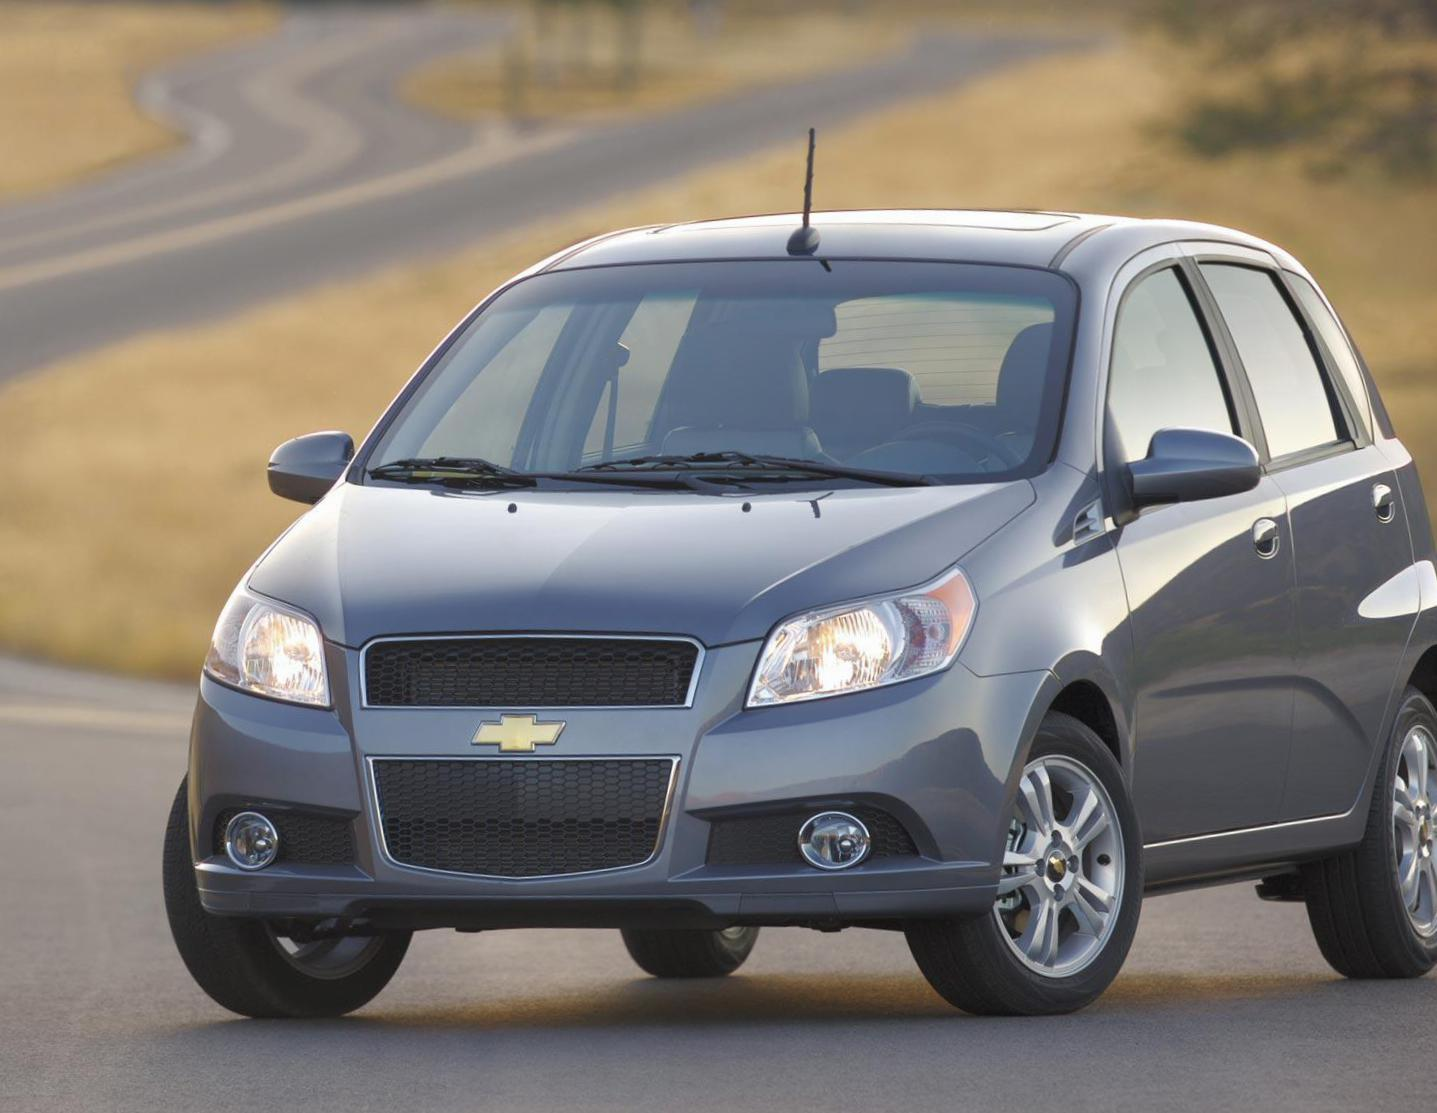 Chevrolet Aveo Hatchback review 2014